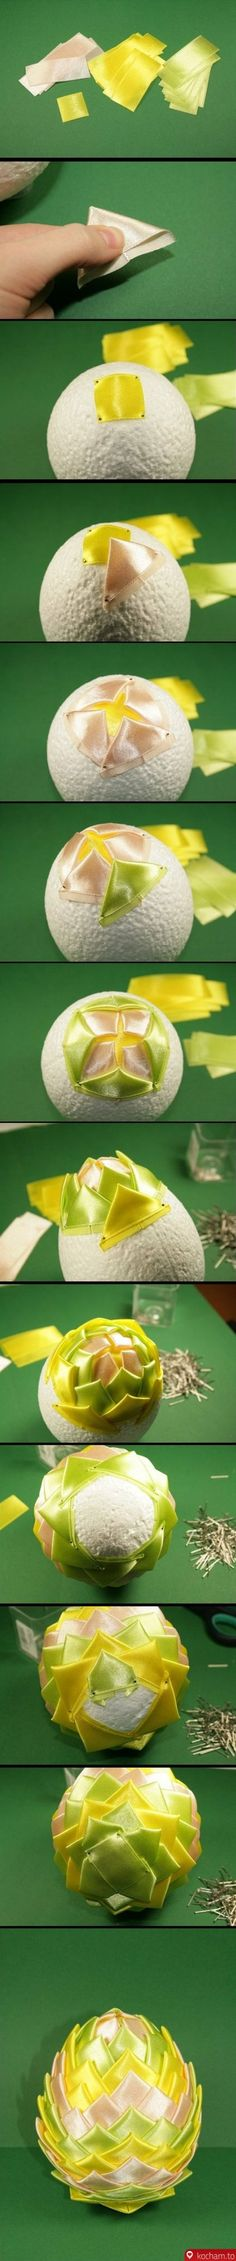 DIY- cool idea for an ornament, table decor or hanging decoration